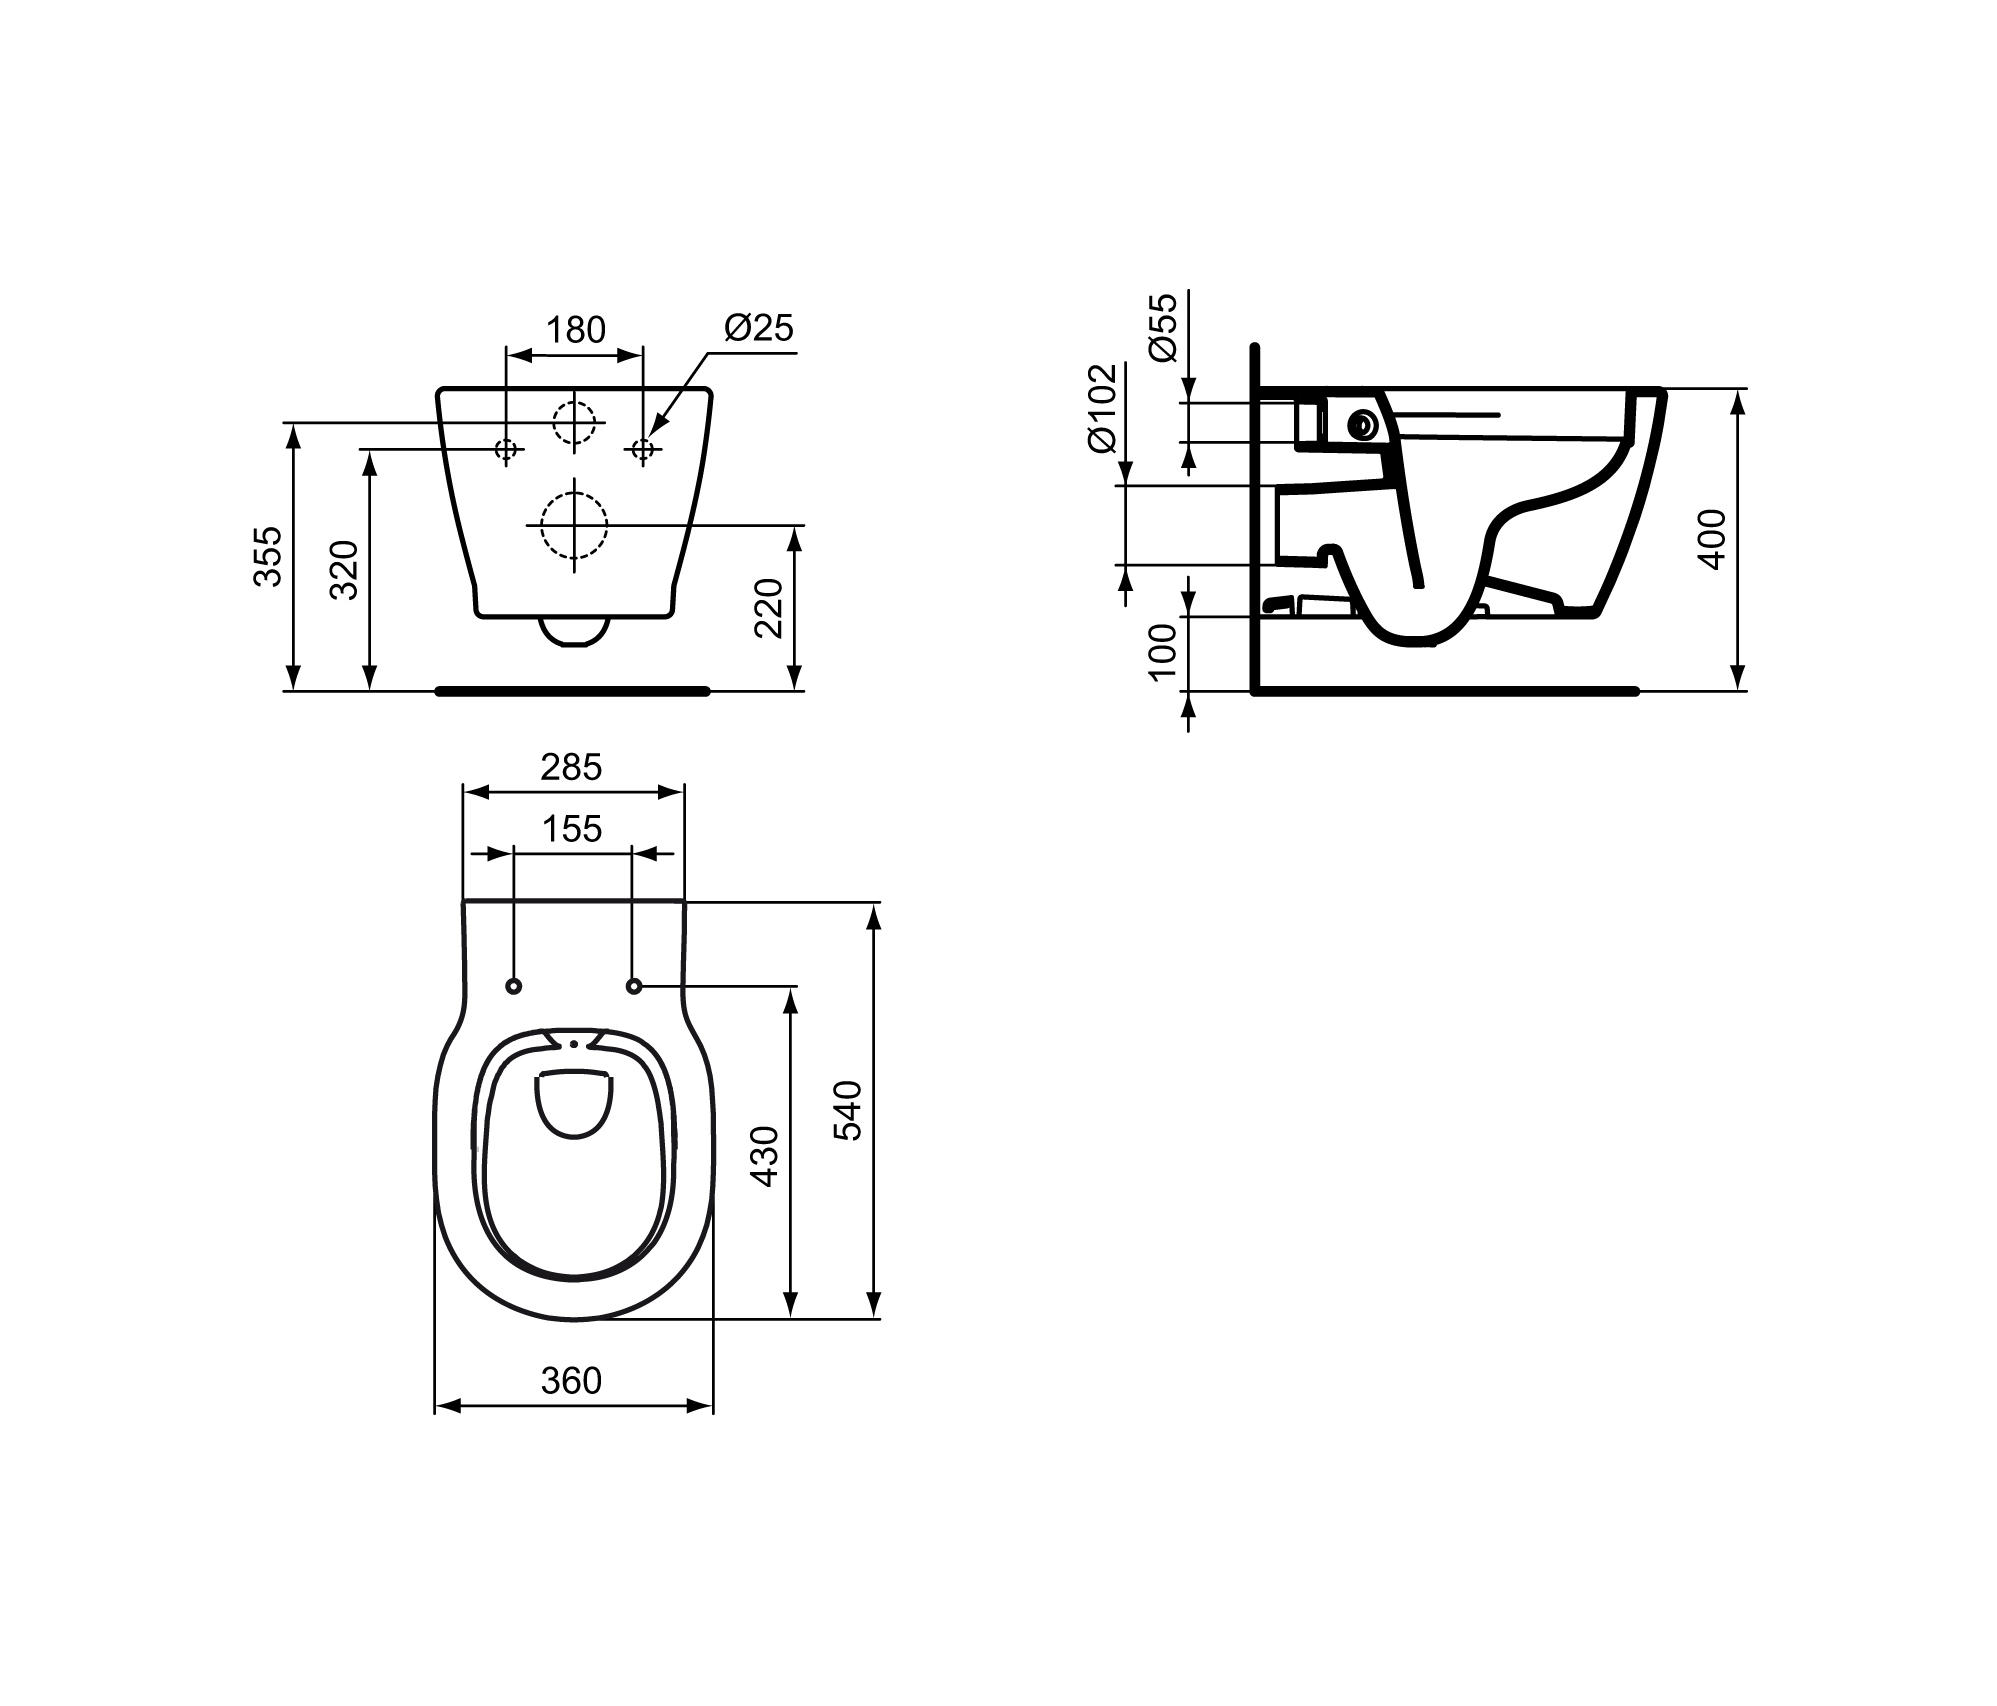 Cool CONNECT WAND-WC RANDLOS - Toilets from Ideal Standard | Architonic XE08